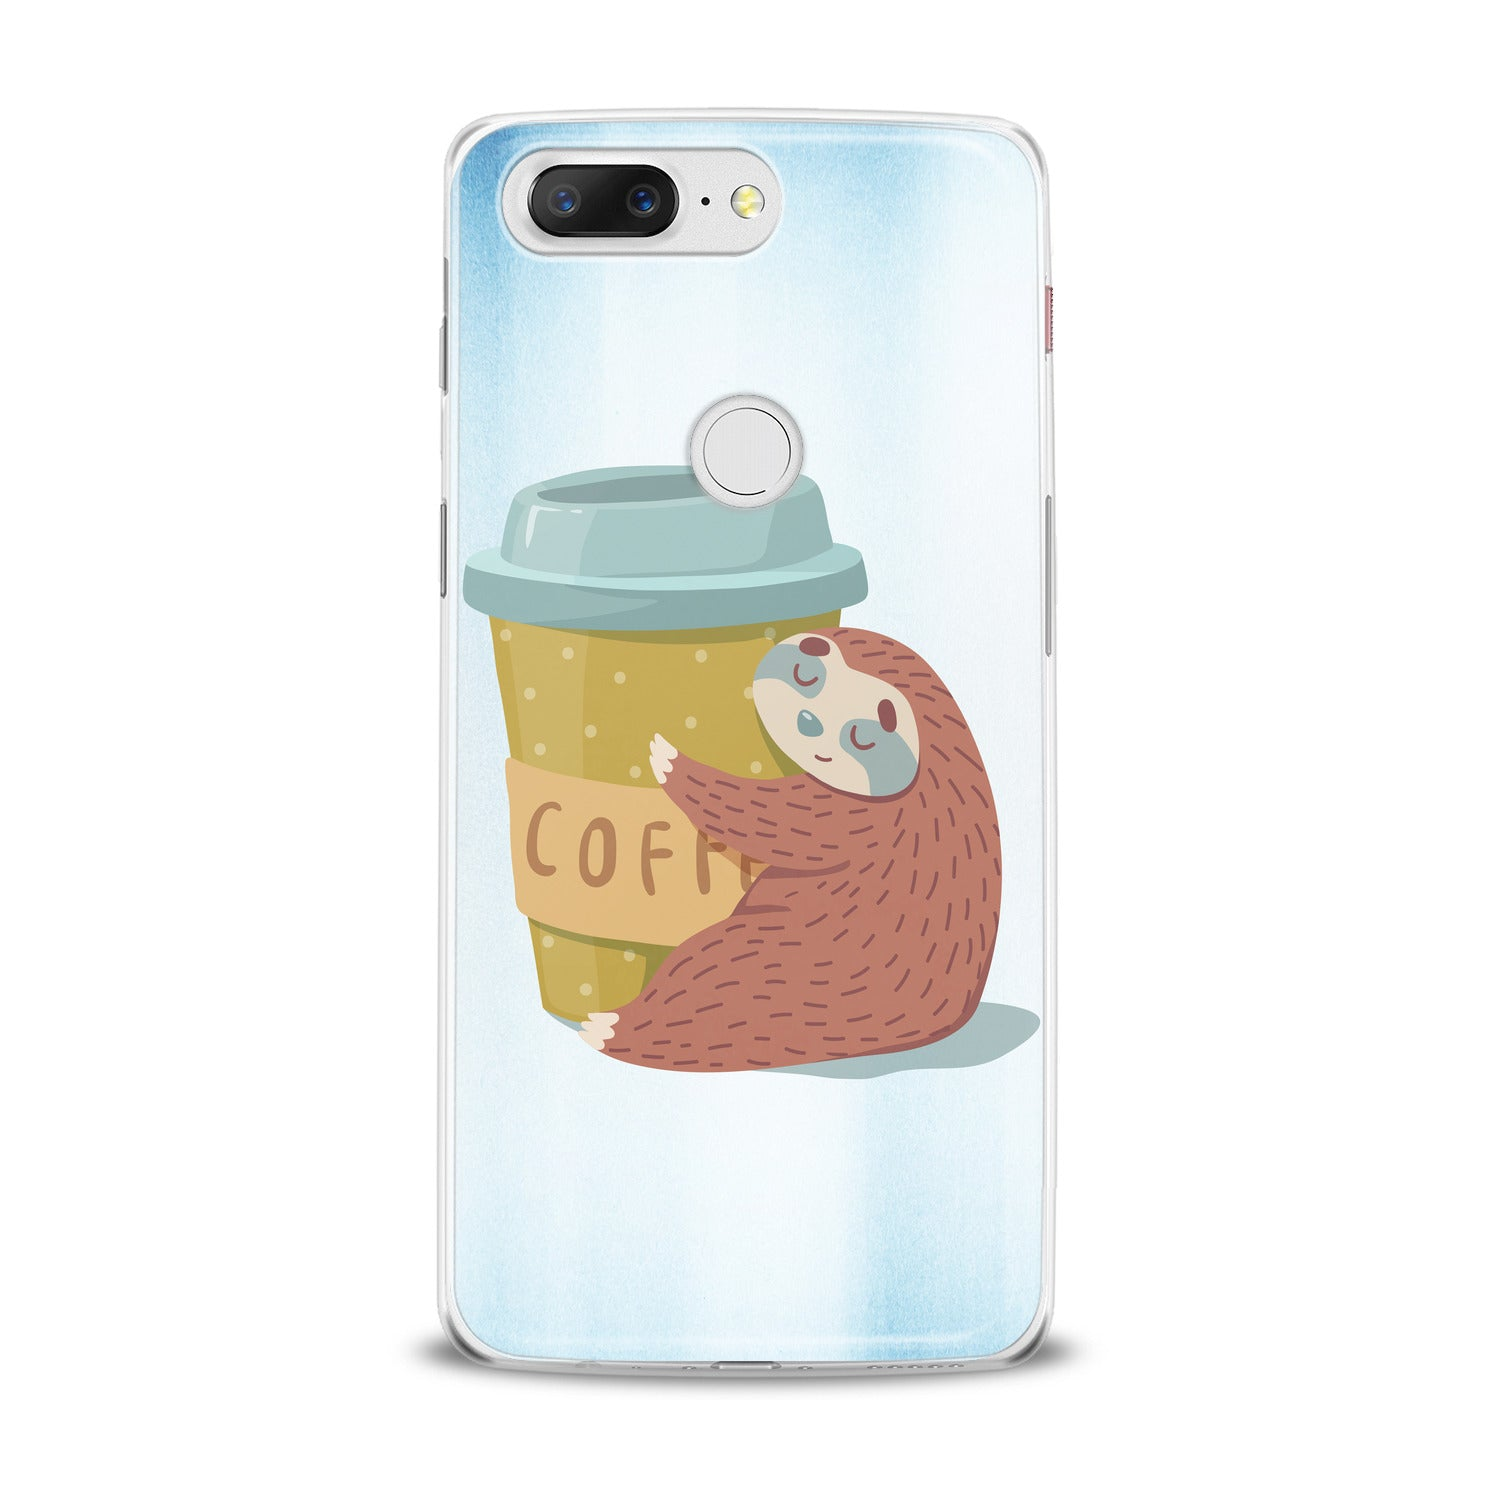 Lex Altern Coffe Sloth OnePlus Case